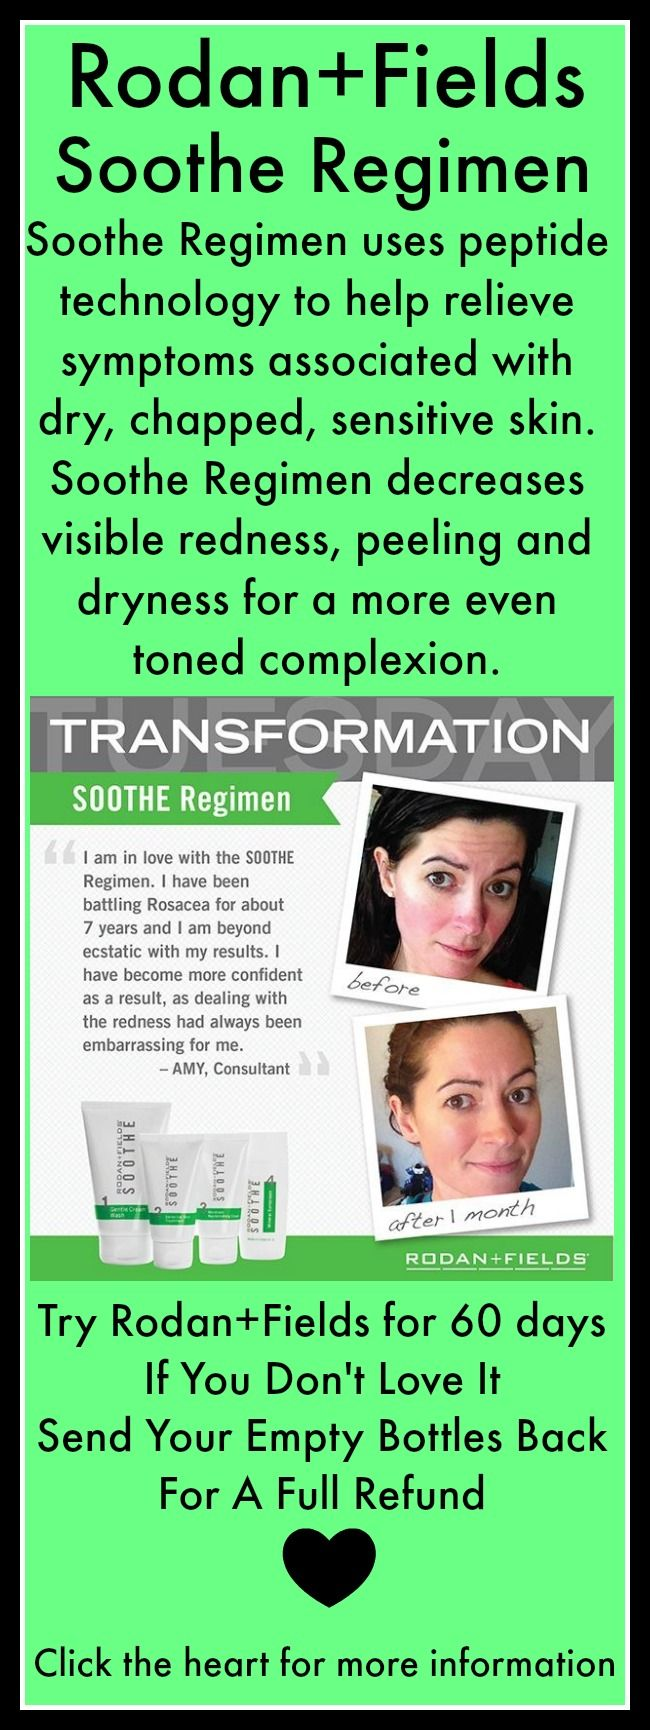 R+F Soothe Regimen contains skin soothing peptides that work to neutralize triggers that produce…